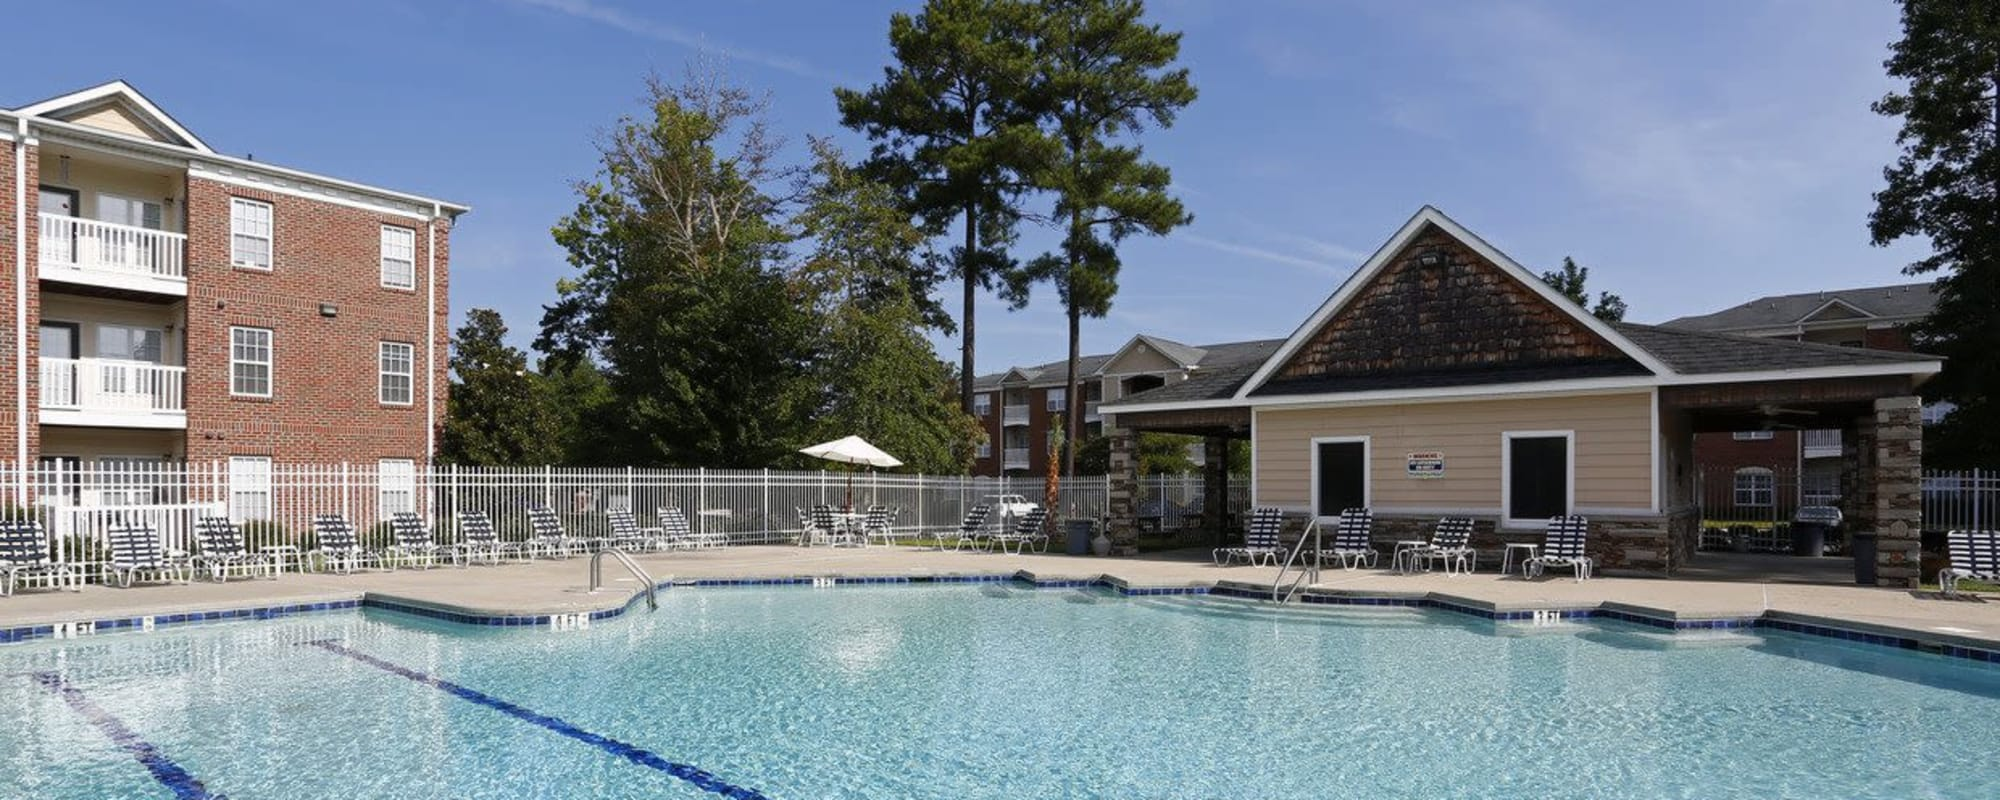 Apartments at Waterford Place in Greenville, North Carolina